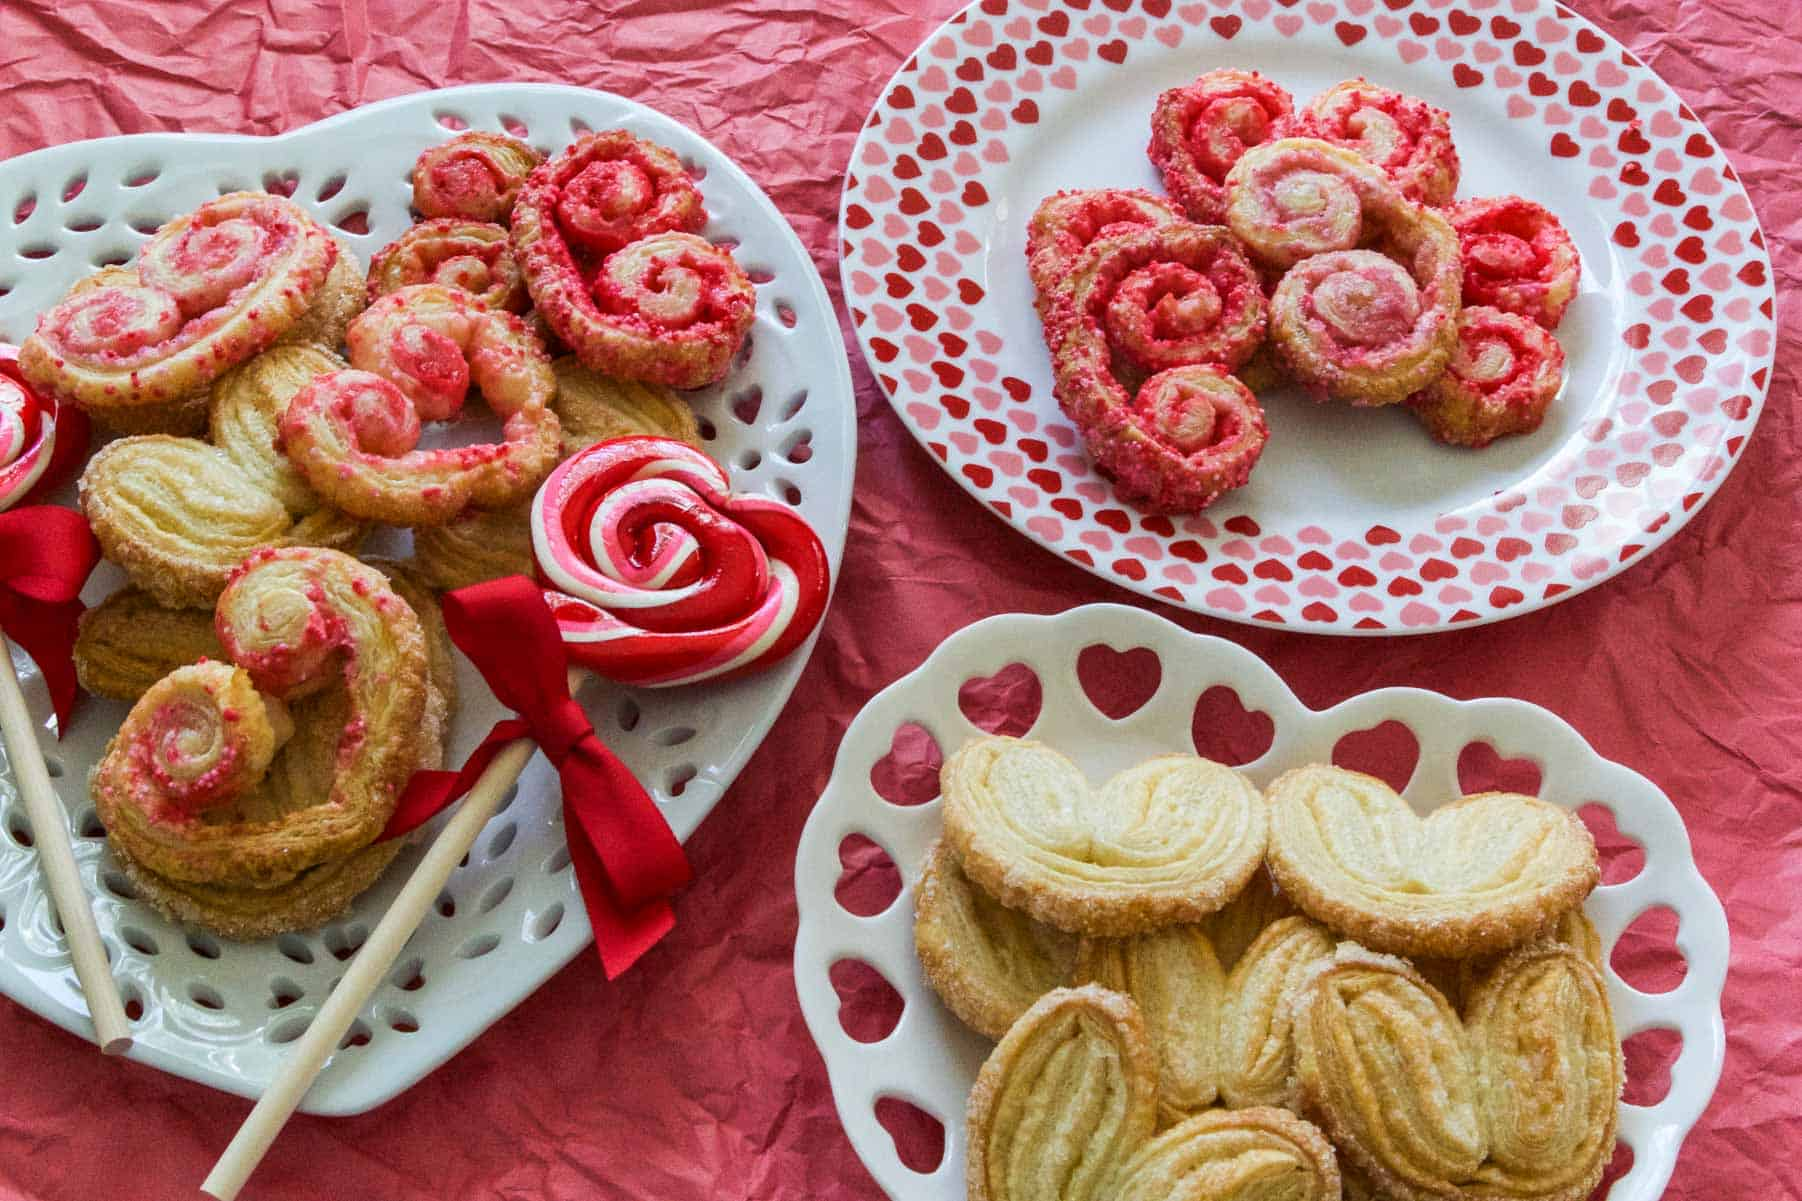 Fresh baked golden brown palmiers on a white shaped heart plate.